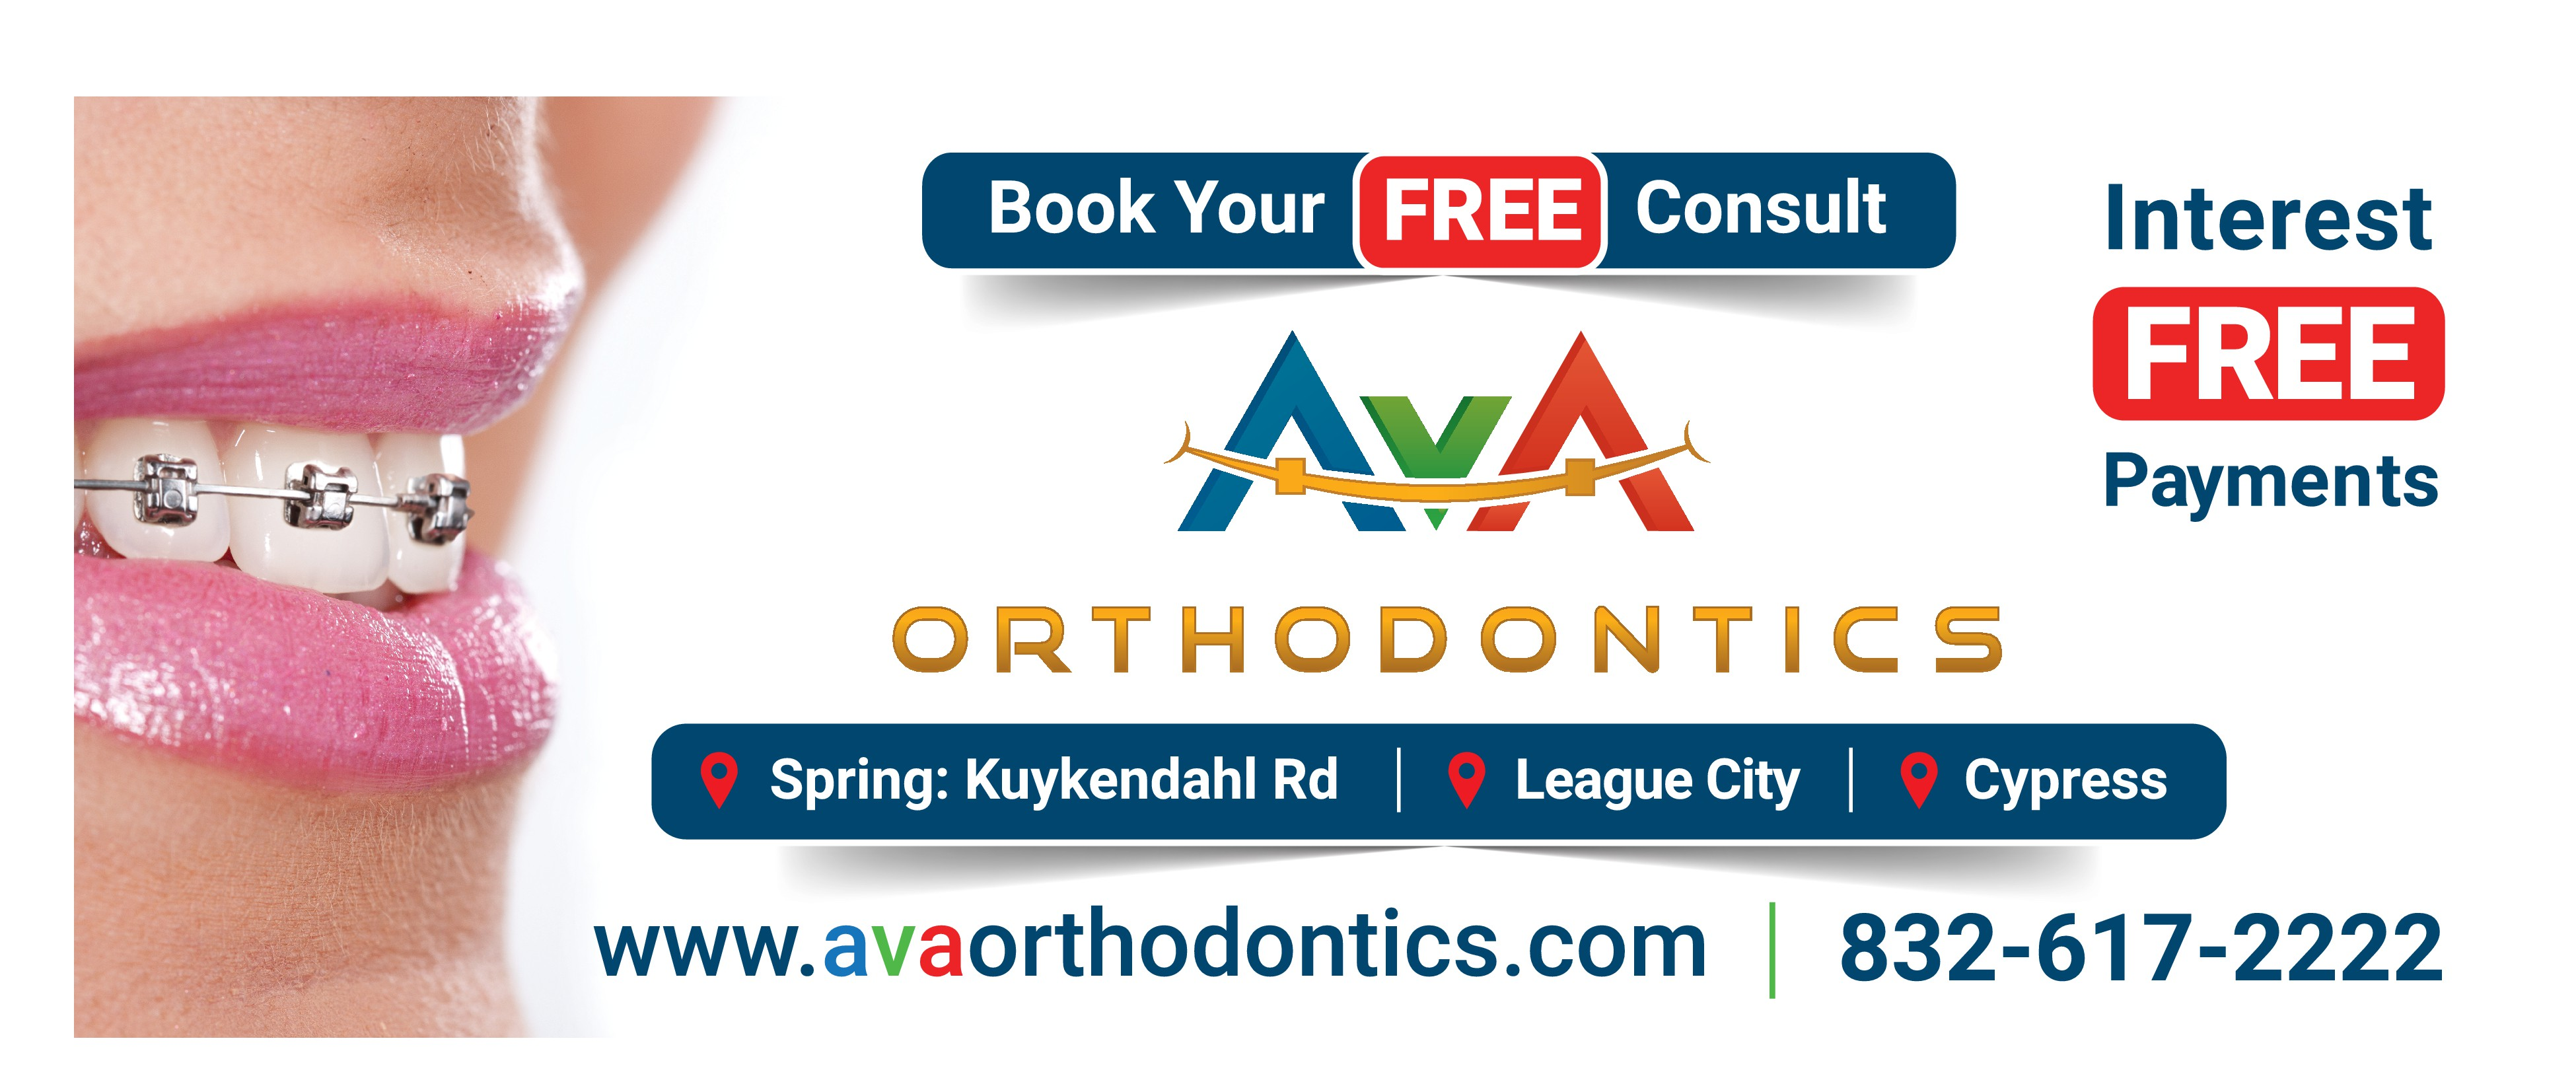 Hot Billboard Design Wanted - AvA Orthodontics